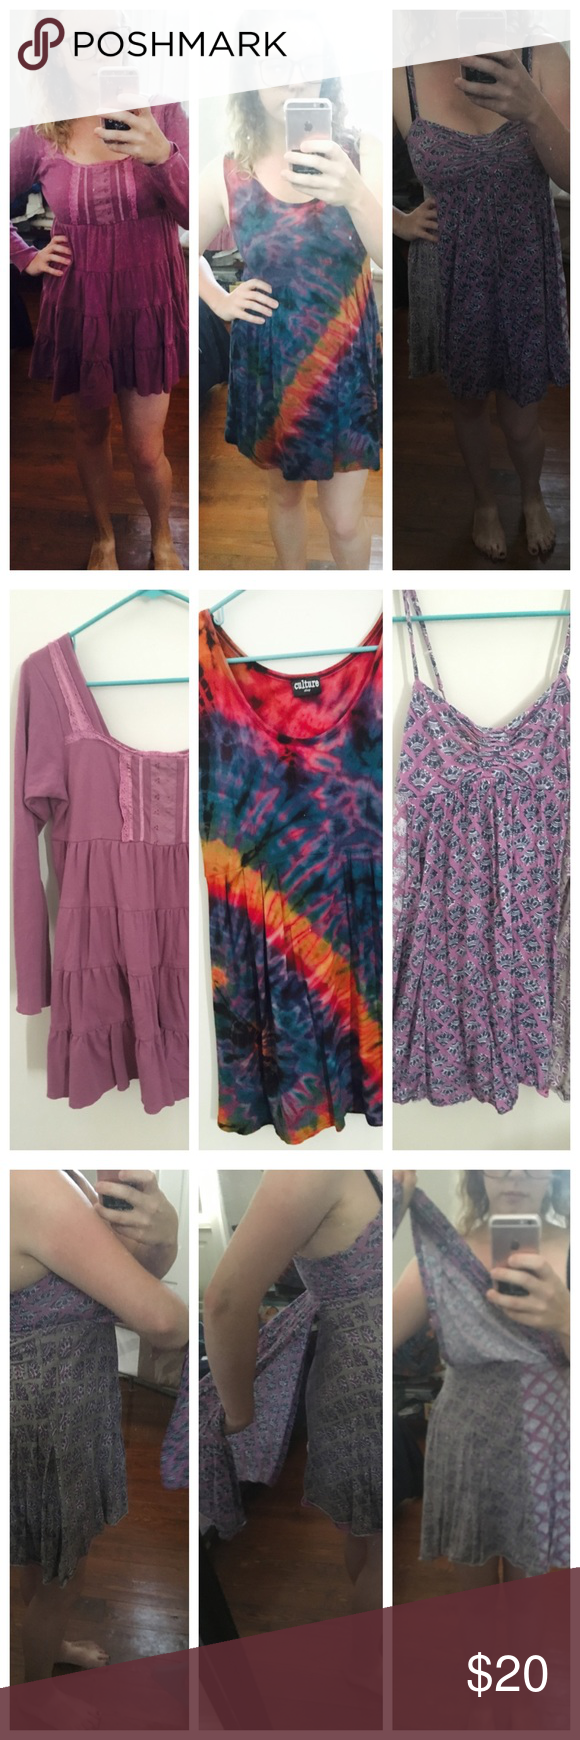 Bundle of 3 purple hippie dresses! One light and faded (intentional) baby doll dress, warm enough for fall with some leggings! One tie-Dye sleeveless dress and one purple spaghetti dress. Picture 3 shows the unique detail of the third dress. On the front and back a piece of fabric lays on top the dress sewn in at the bust. Third dress is American Eagle. The first two are from a local head shop in New Orleans, Hippie Gipsy located right outside the French Quarter downtown. American Eagle…